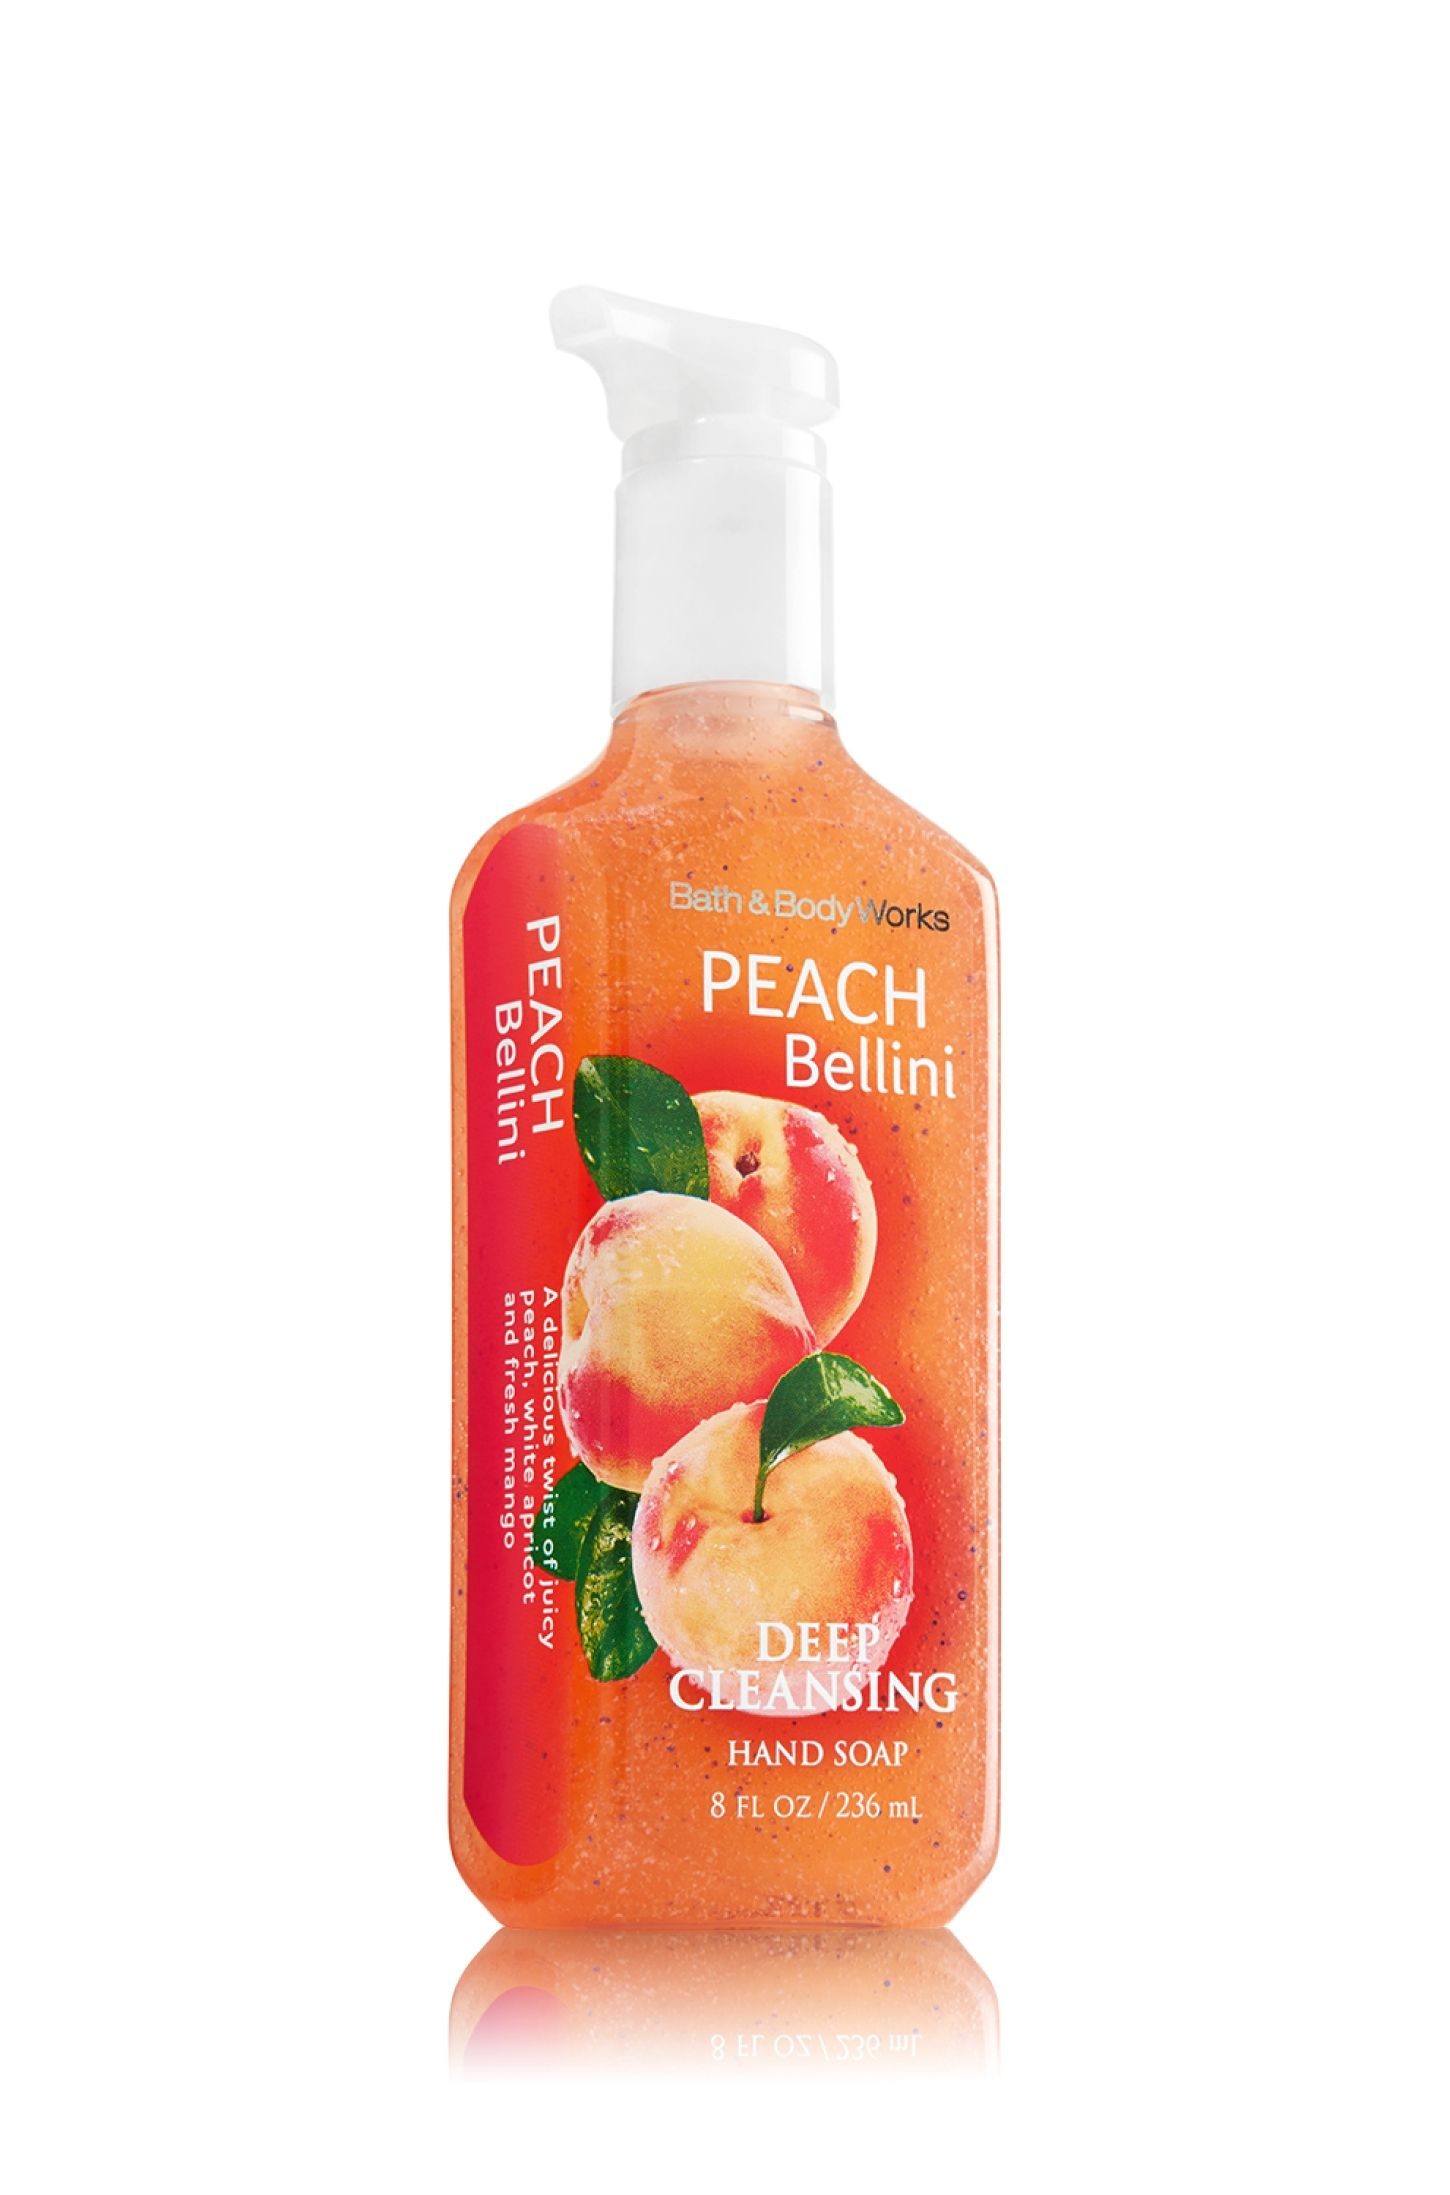 Peach Bellini Bath Body Works Deep Cleansing Hand Soap A